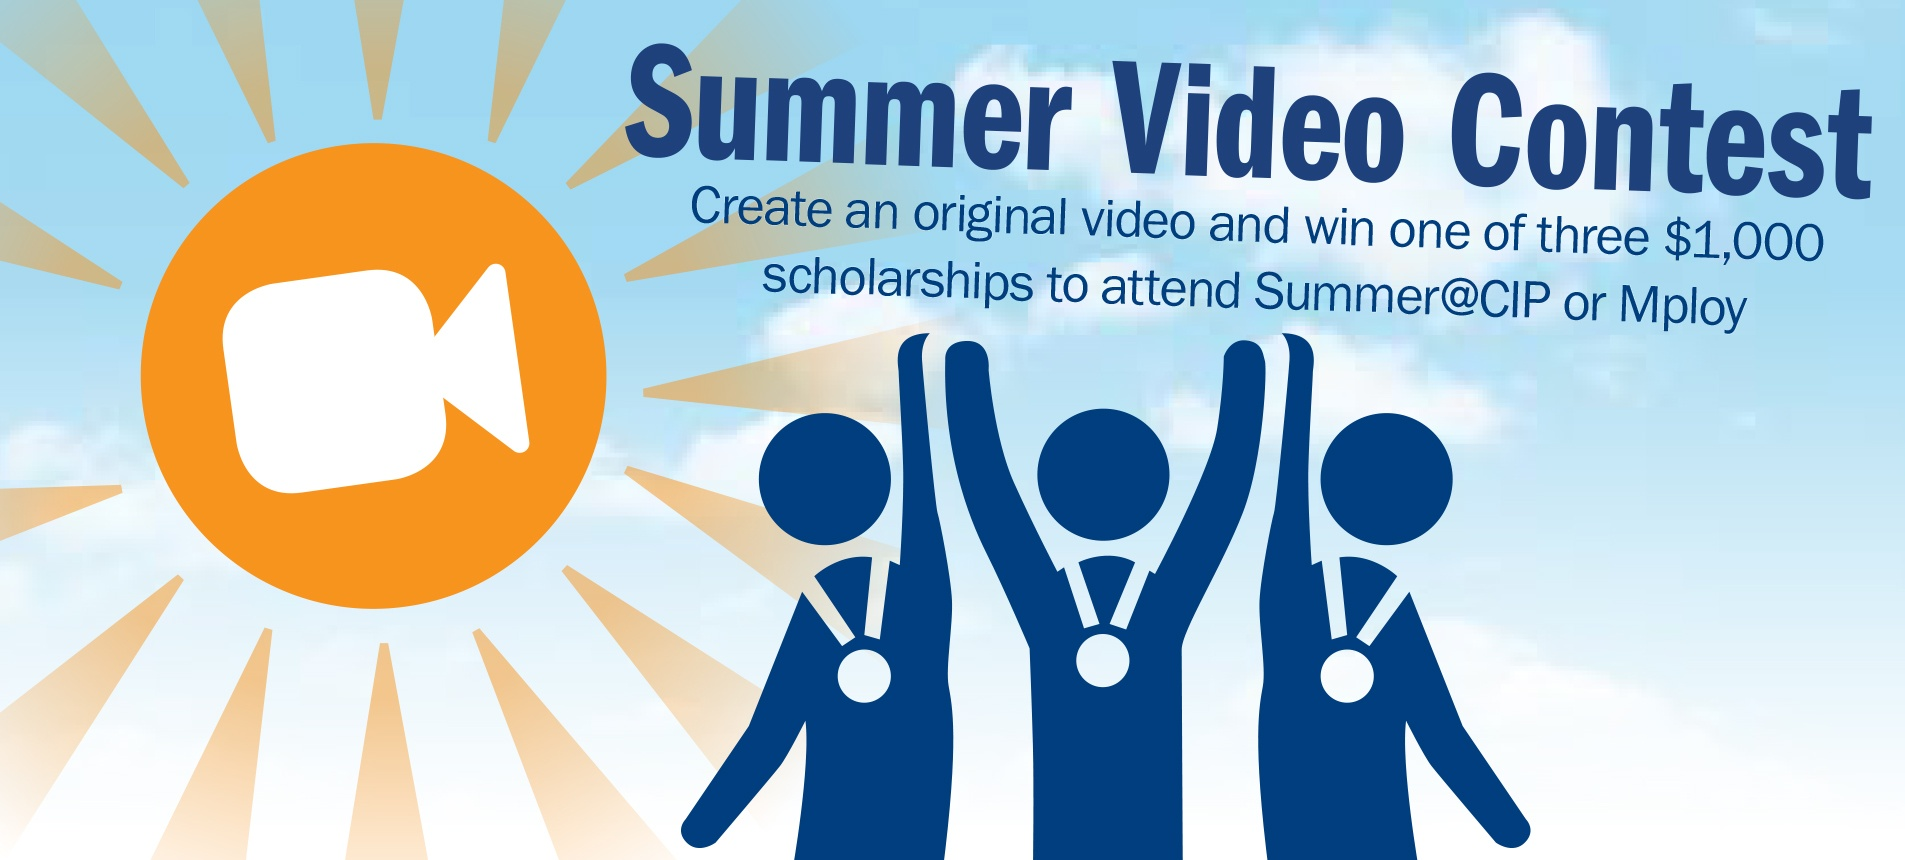 Summer Video Contest